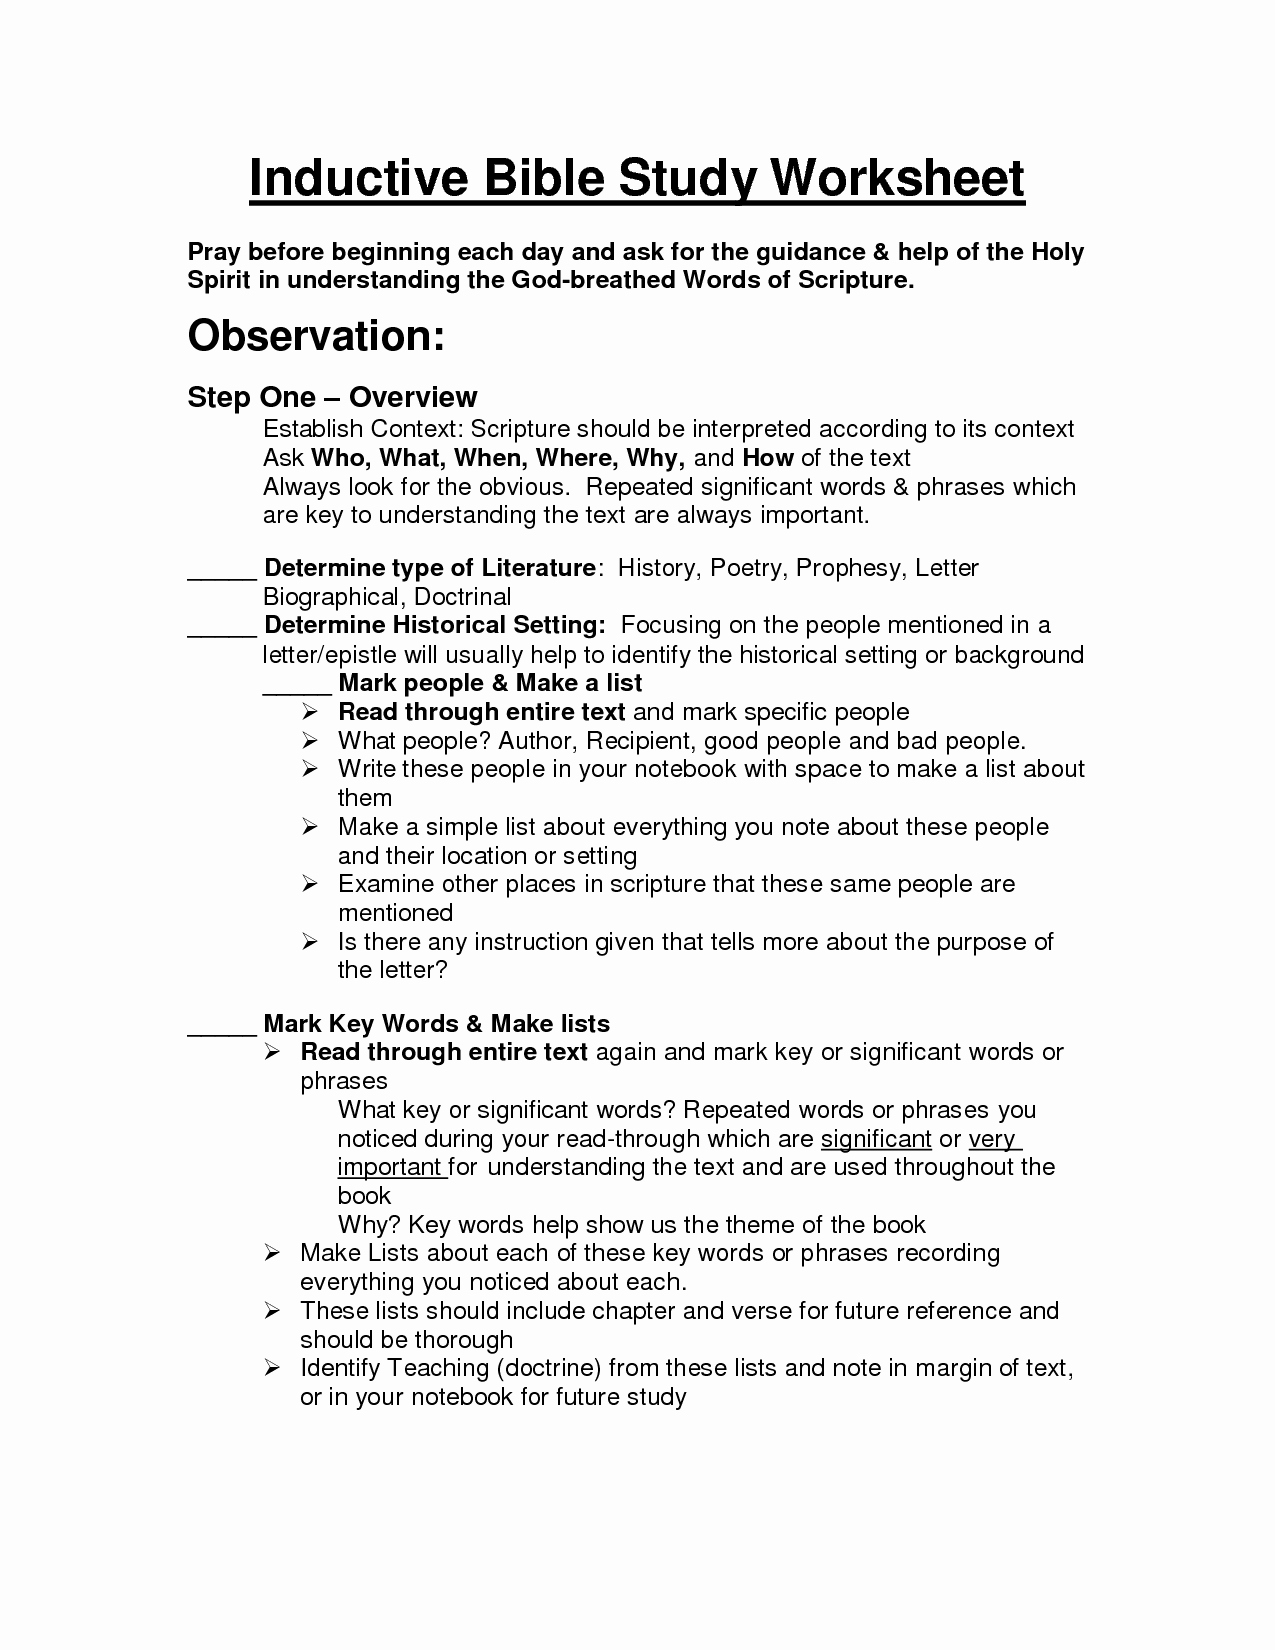 20 Printable Bible Study Worksheets – Diocesisdemonteria - Free Printable Bible Study Worksheets For Adults